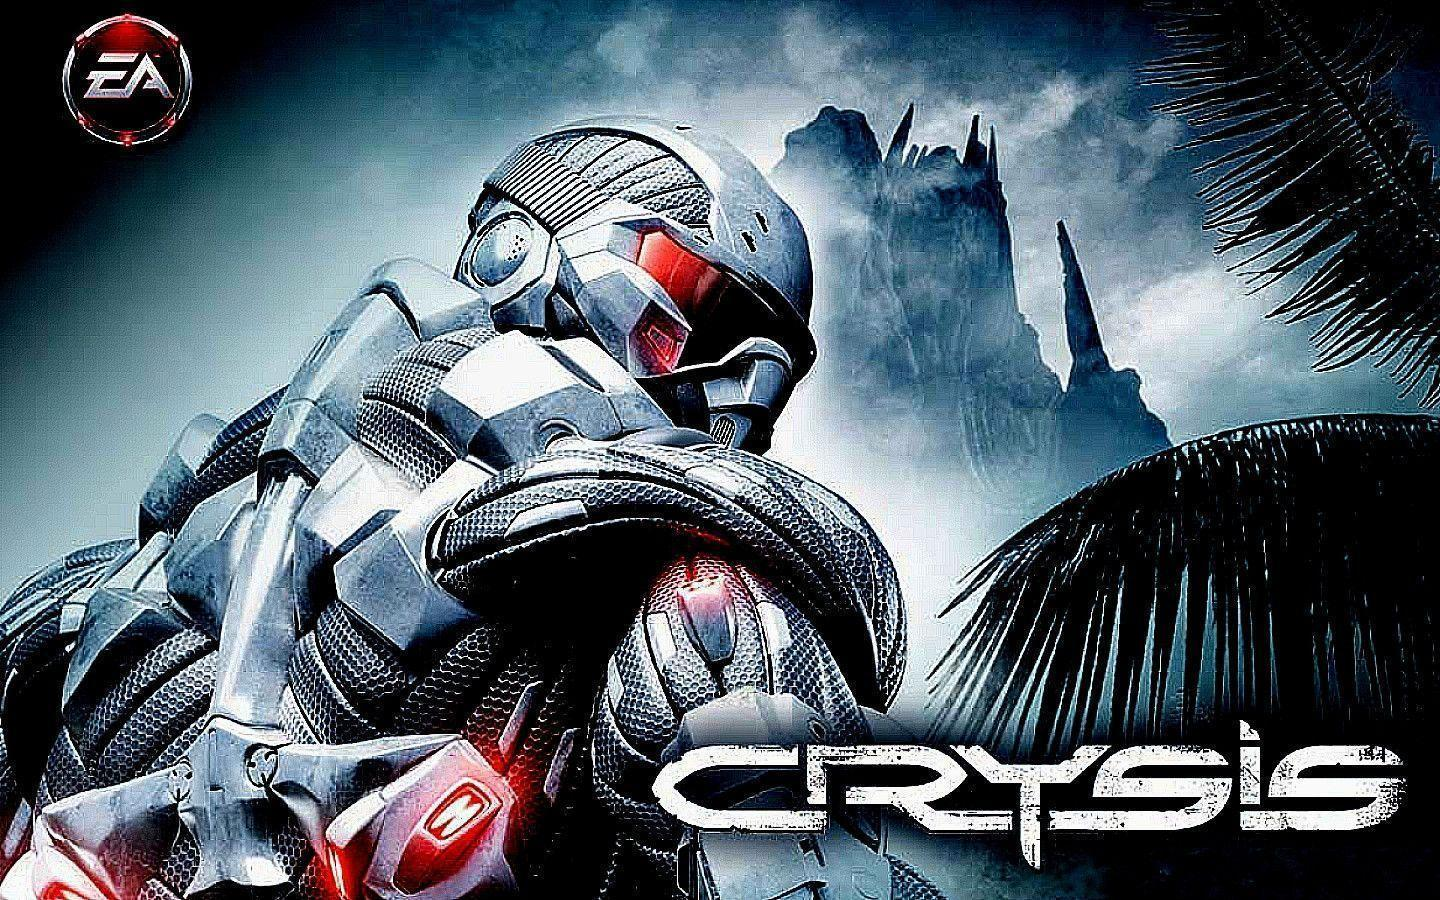 crysis 4 wallpaper hd - photo #14